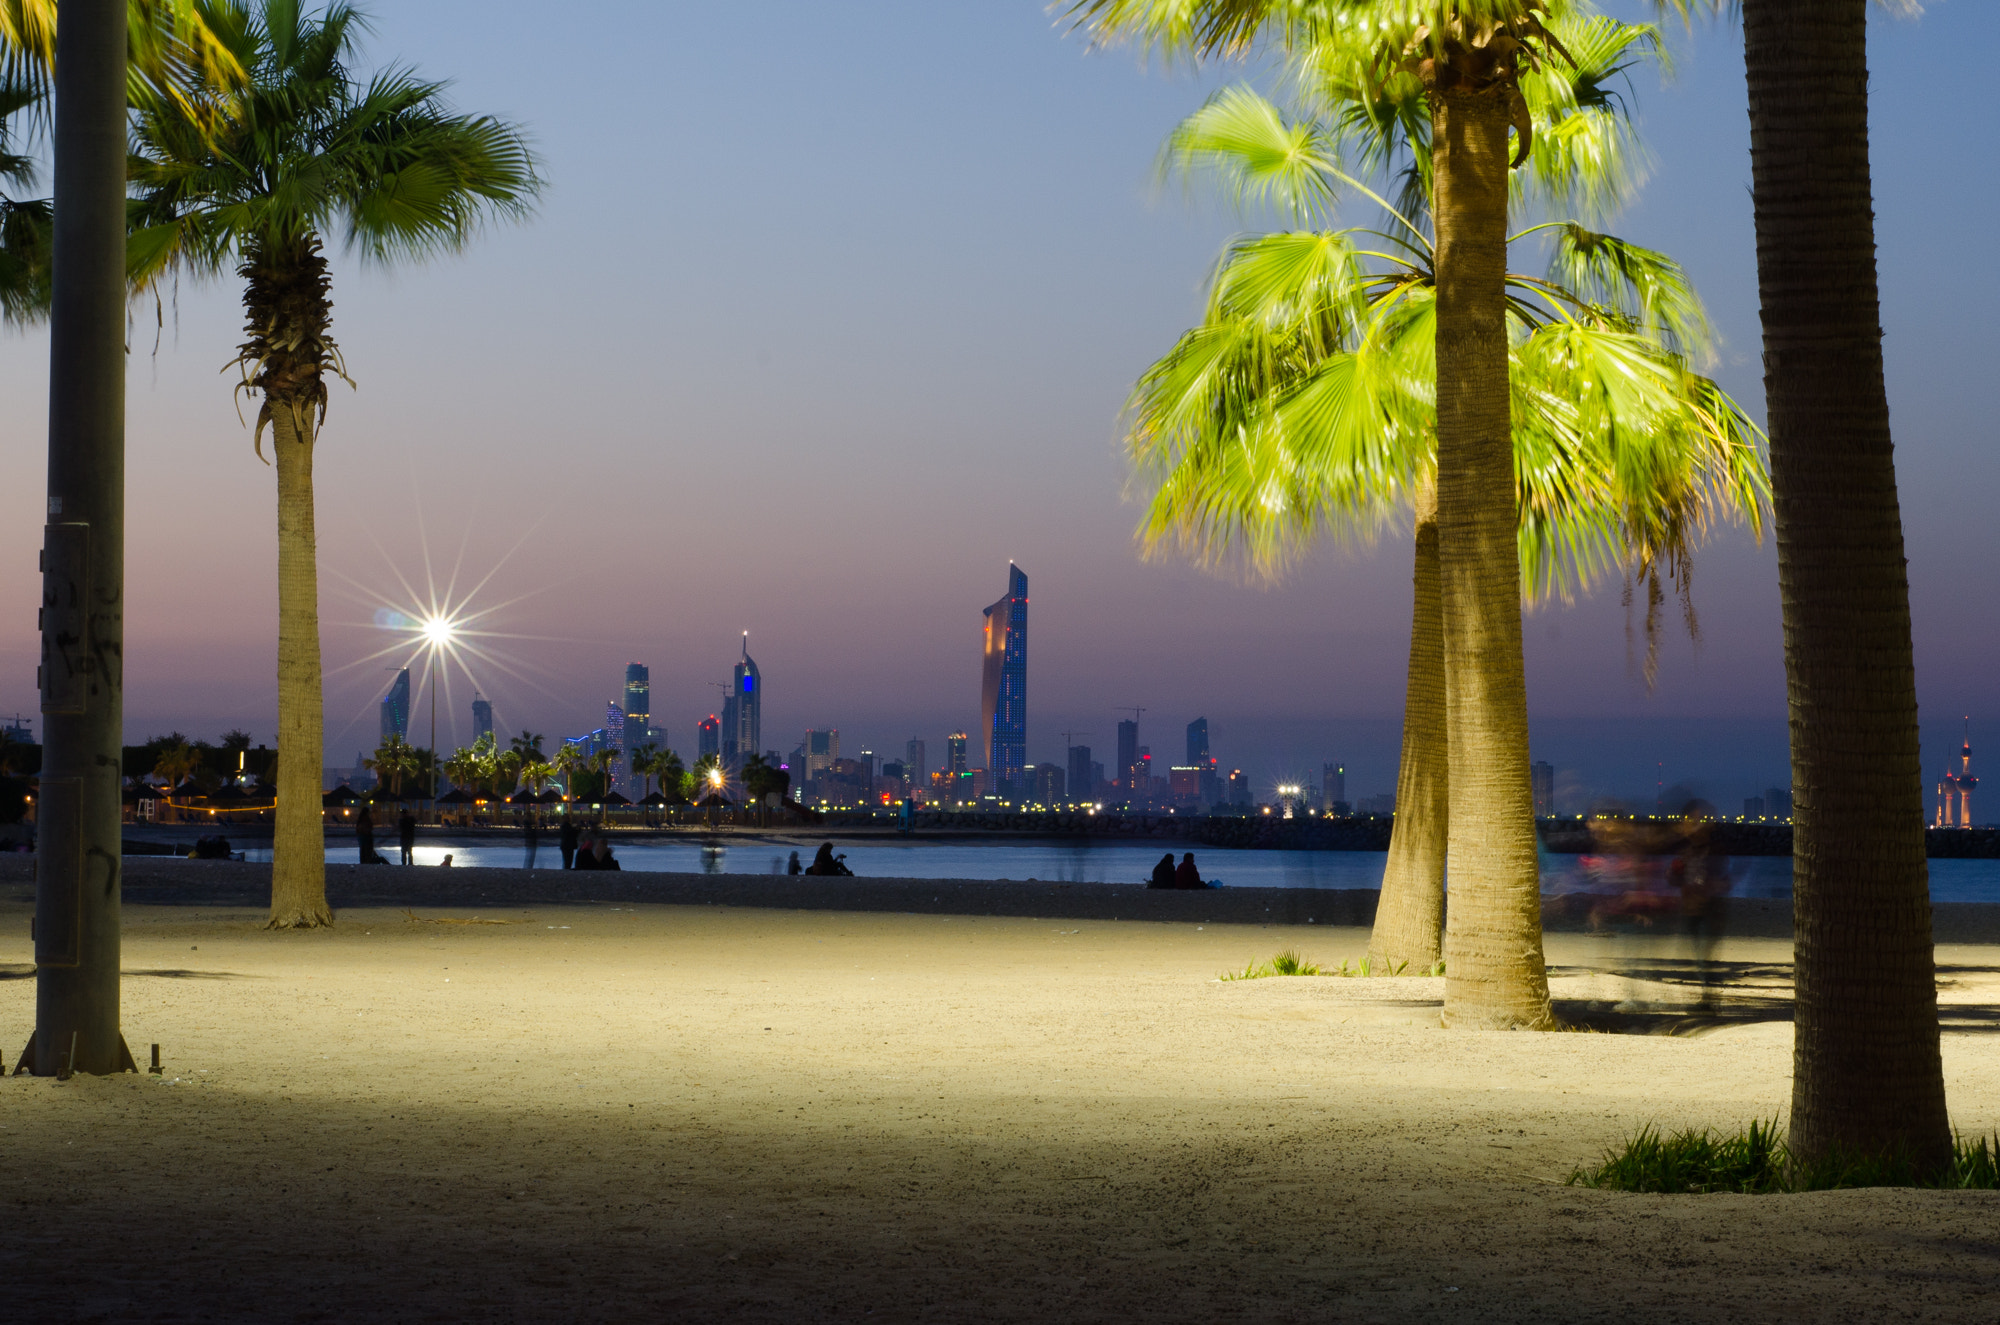 Photograph Al Hamra from Marina Beach by Yousef Abdul Husain on 500px